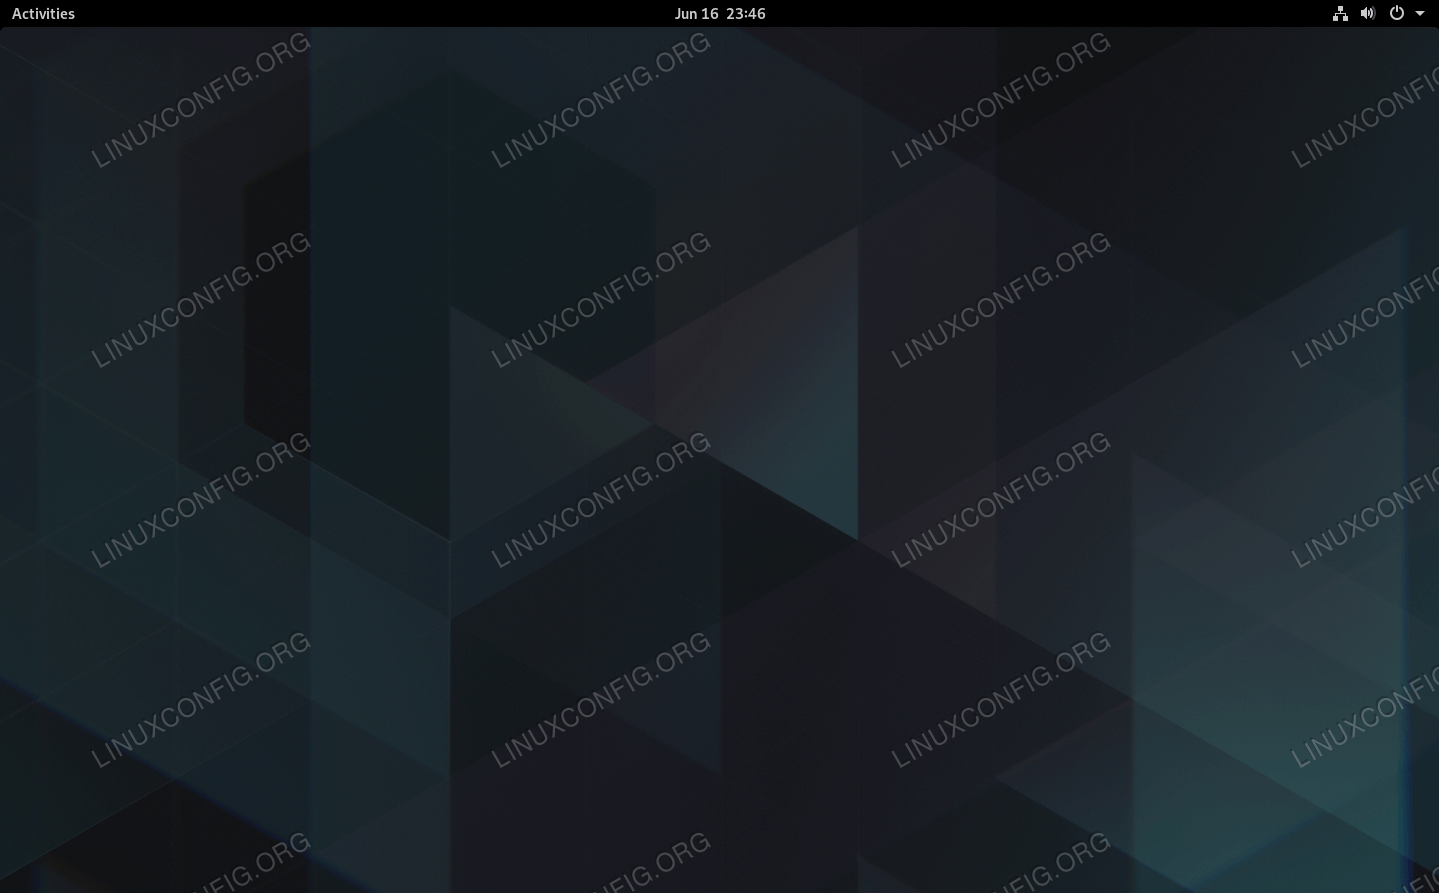 GNOME loaded on Manjaro with default settings